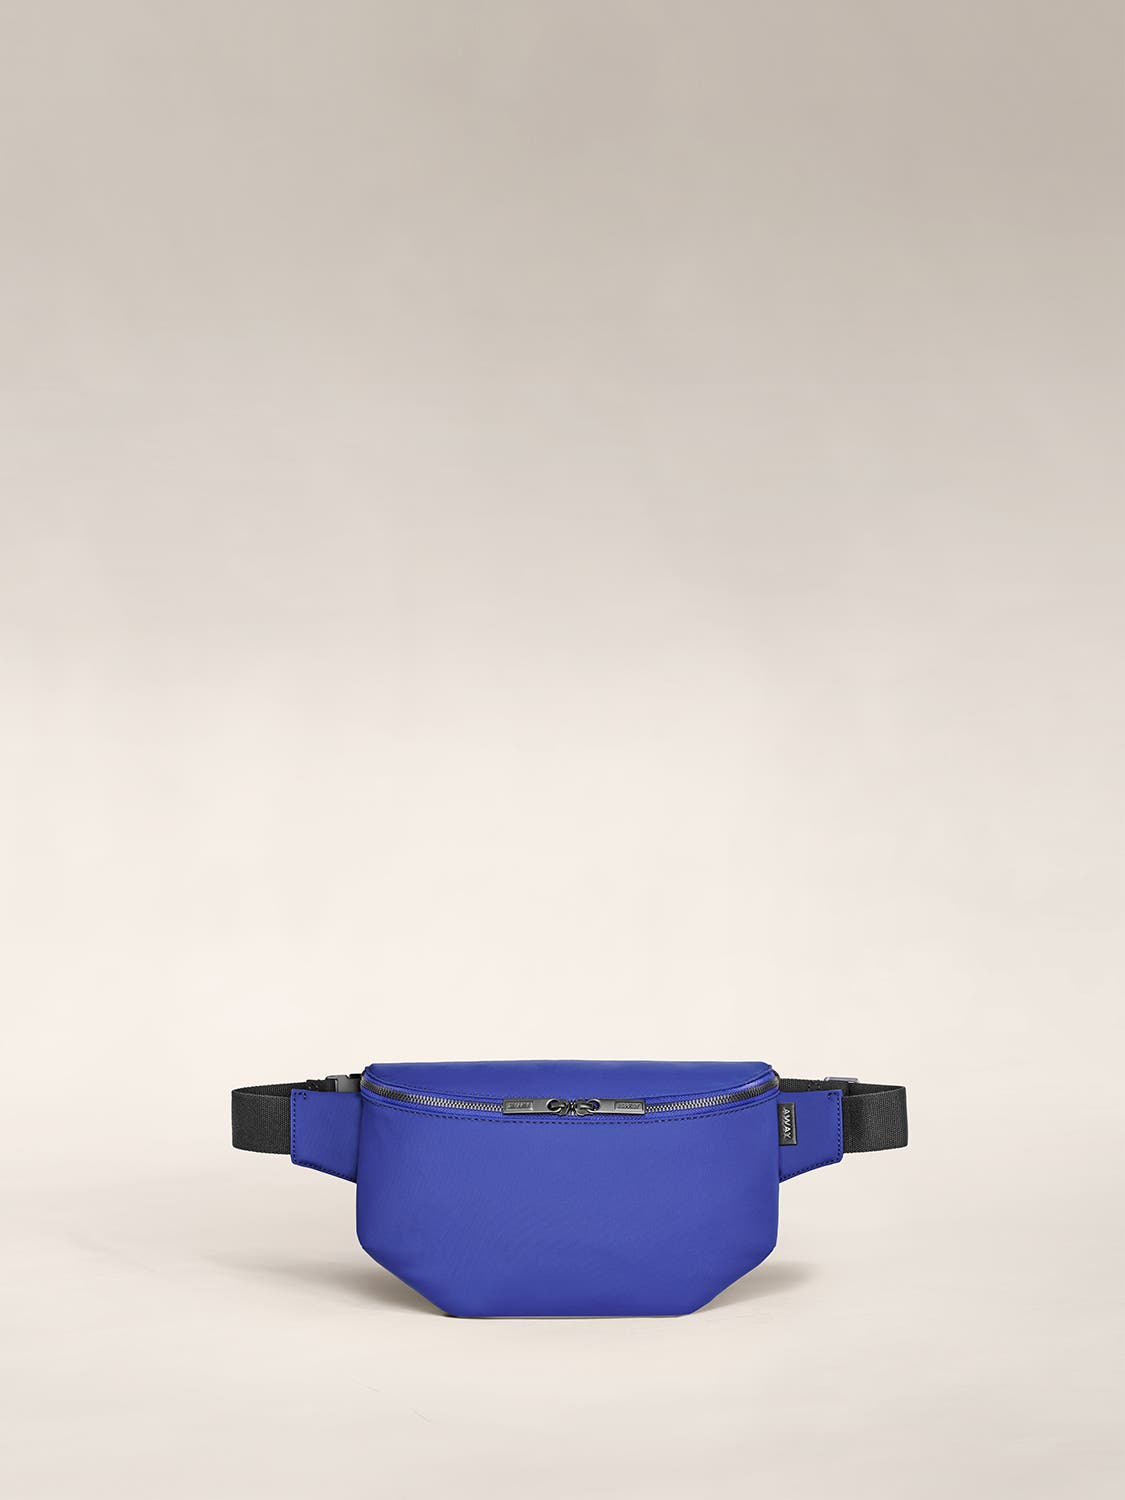 A front view of a sling bag in cobalt.